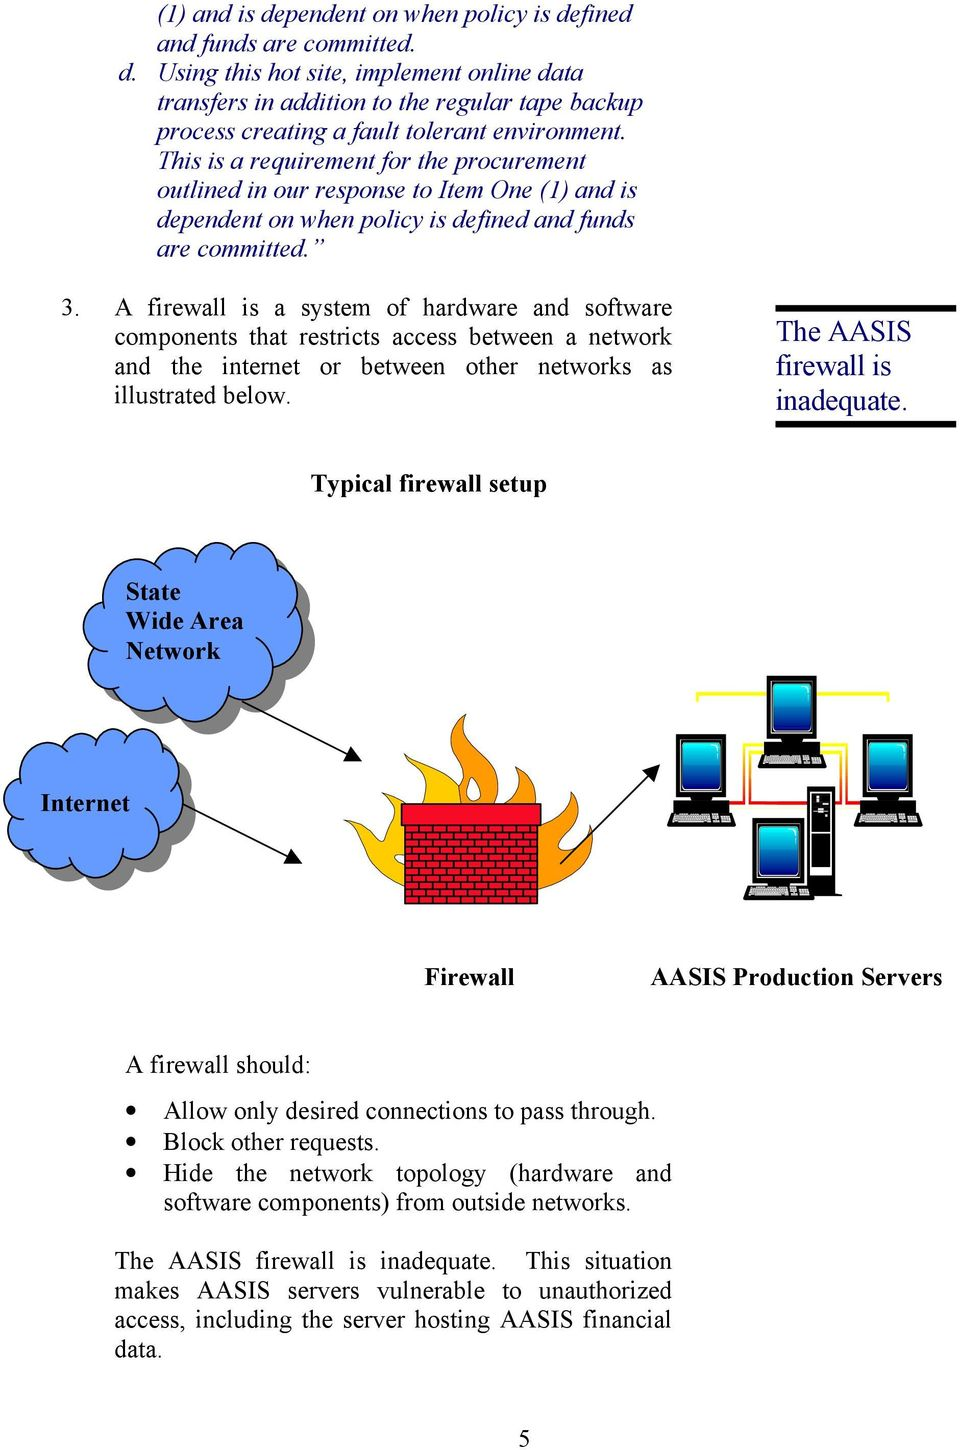 A firewall is a system of hardware and software components that restricts access between a network and the internet or between other networks as illustrated below. The AASIS firewall is inadequate.